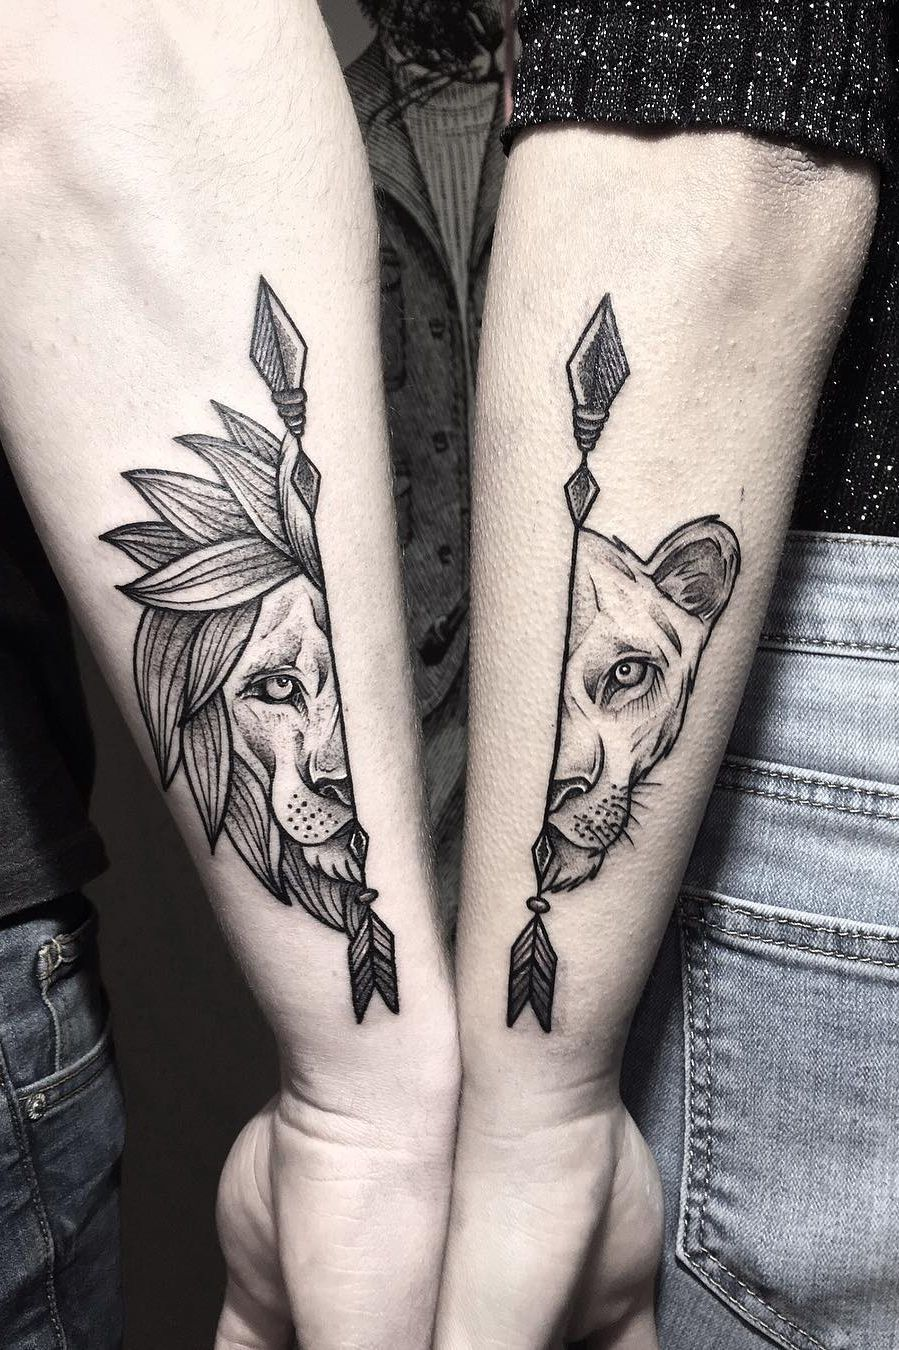 lion & lioness couple tattoo © tattoo artist Rosolino Monti ❤❤❤❤❤❤